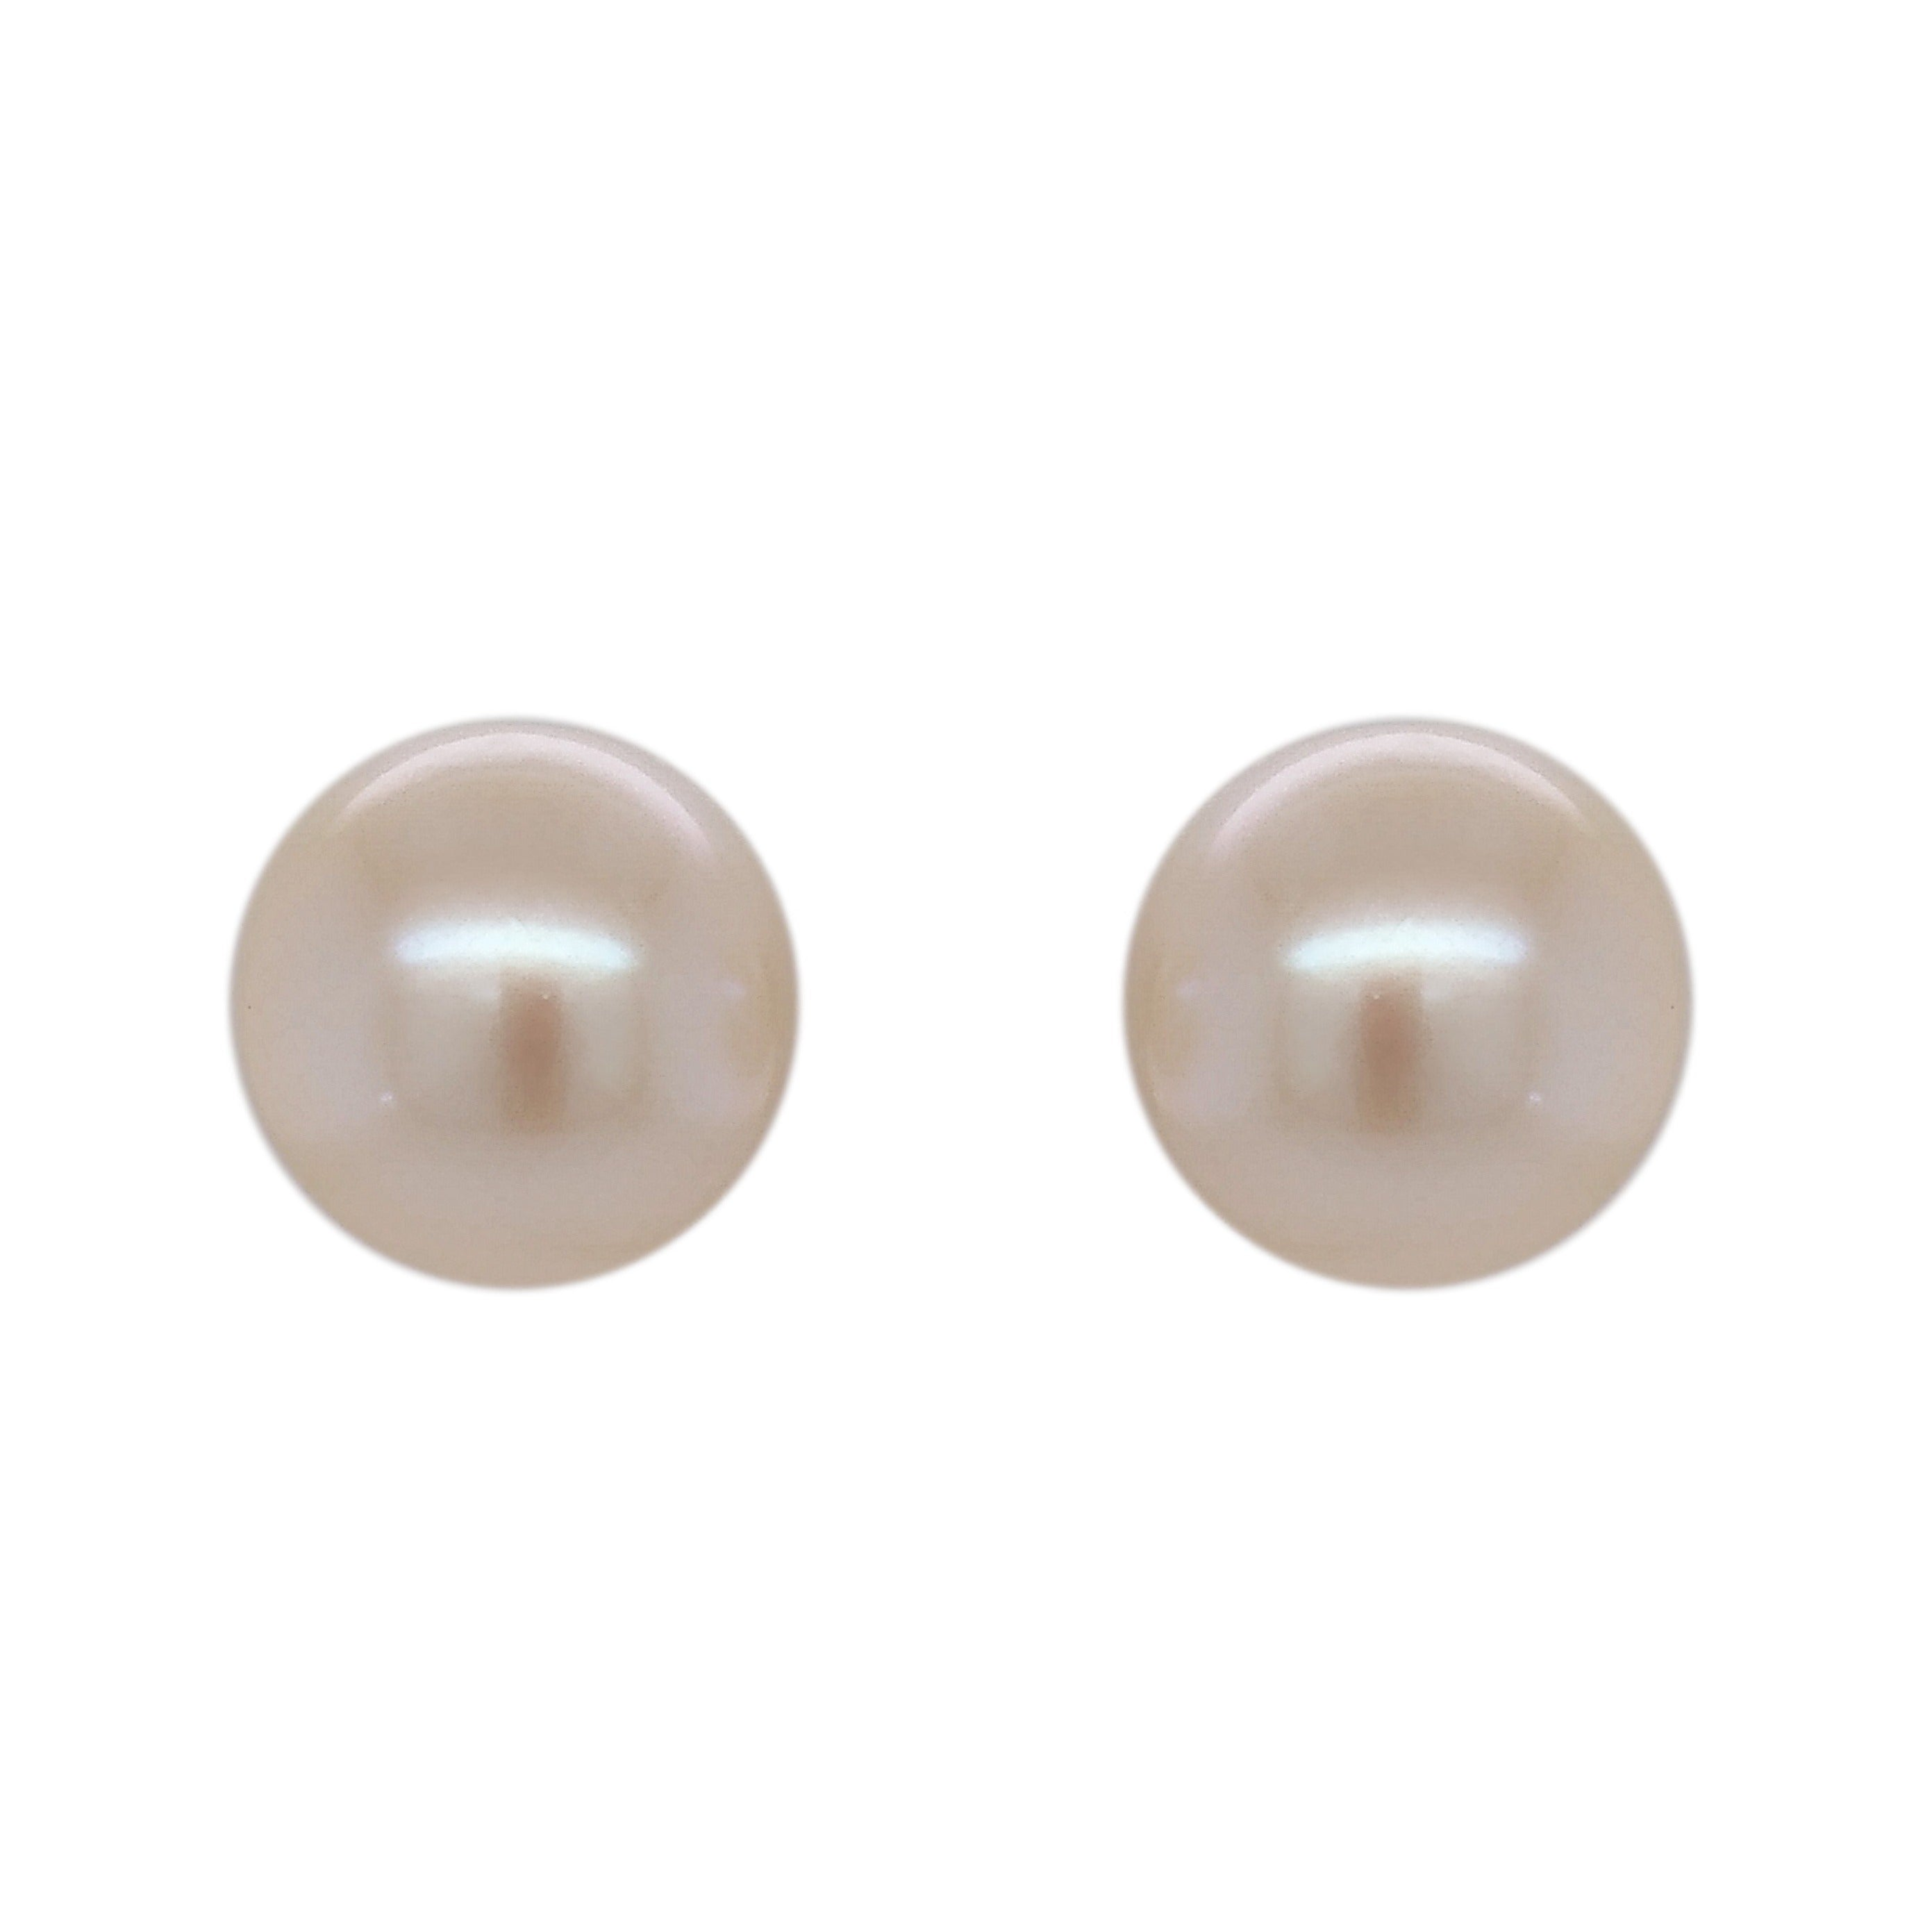 9ct White Gold Freshwater 11/11.5mm Bouton Pearl Stud Earrings